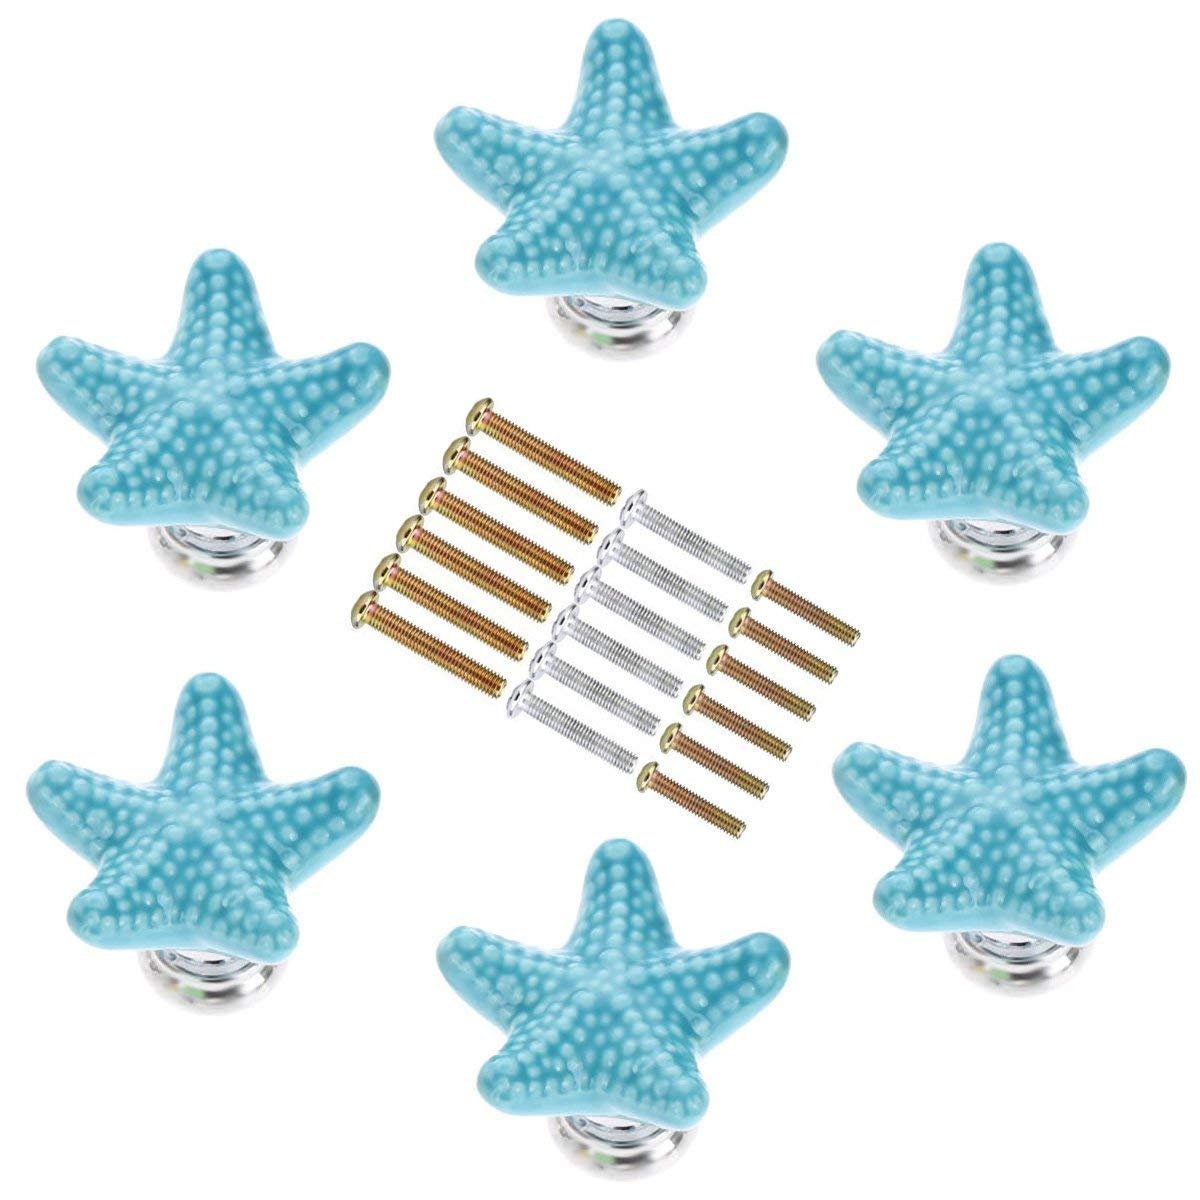 SCTD Starfish Ceramic Drawer Pulls Handles for Nursery Dresser Cupboard Wardrobe Cabinet Kitchen, Beach/Ocean Theme Knobs, Pack of 6 (Blue)